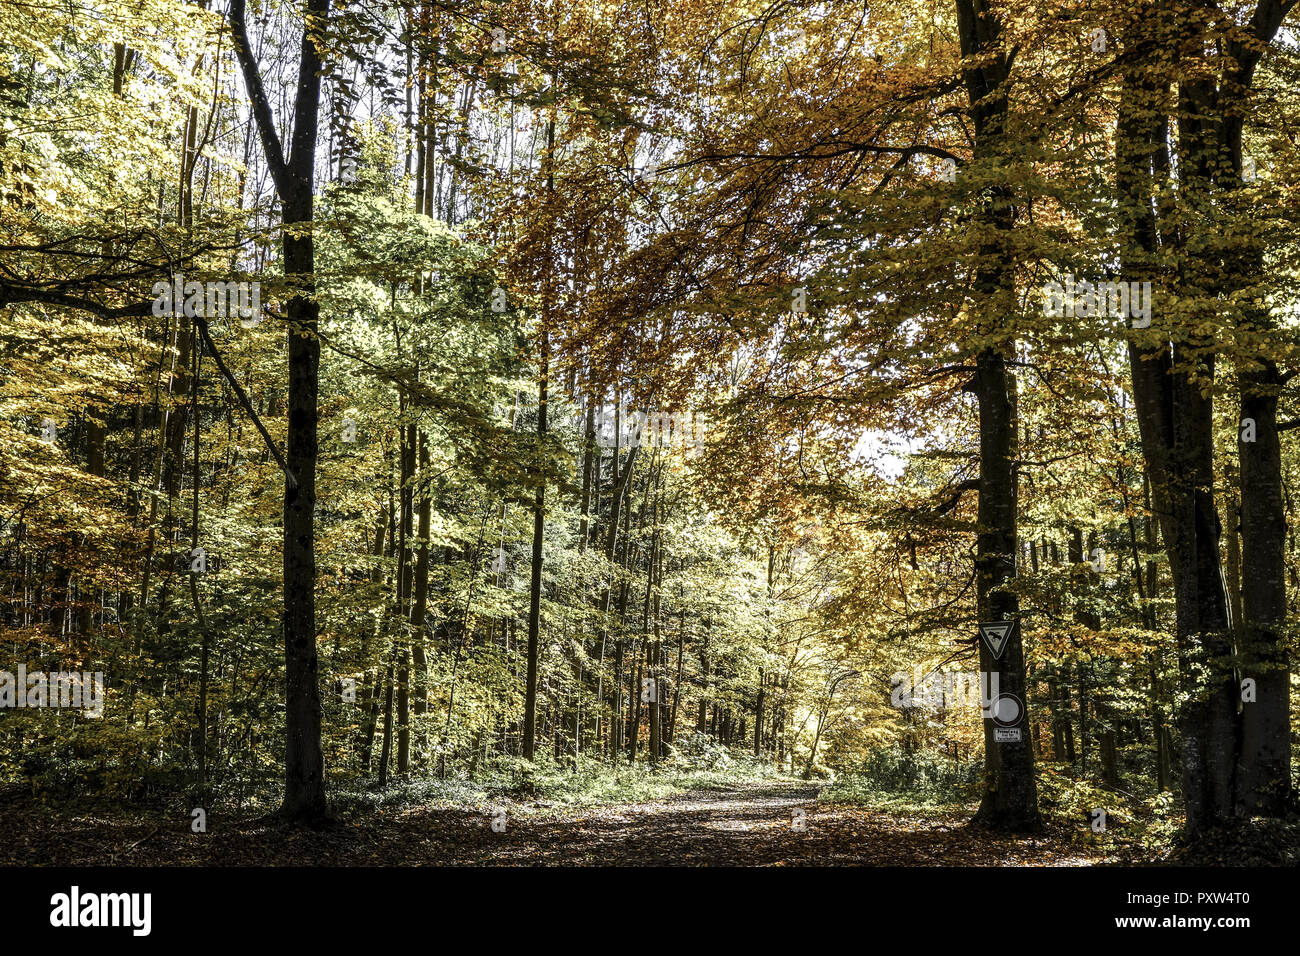 Farbiger Laubwald im Herbst, Colored leaves in autumn deciduous forest, Tree, Trees, Logs, Autumn, Colors, Fall, Foliage, Autumnal, Mood, Idyllic, Lea - Stock Image